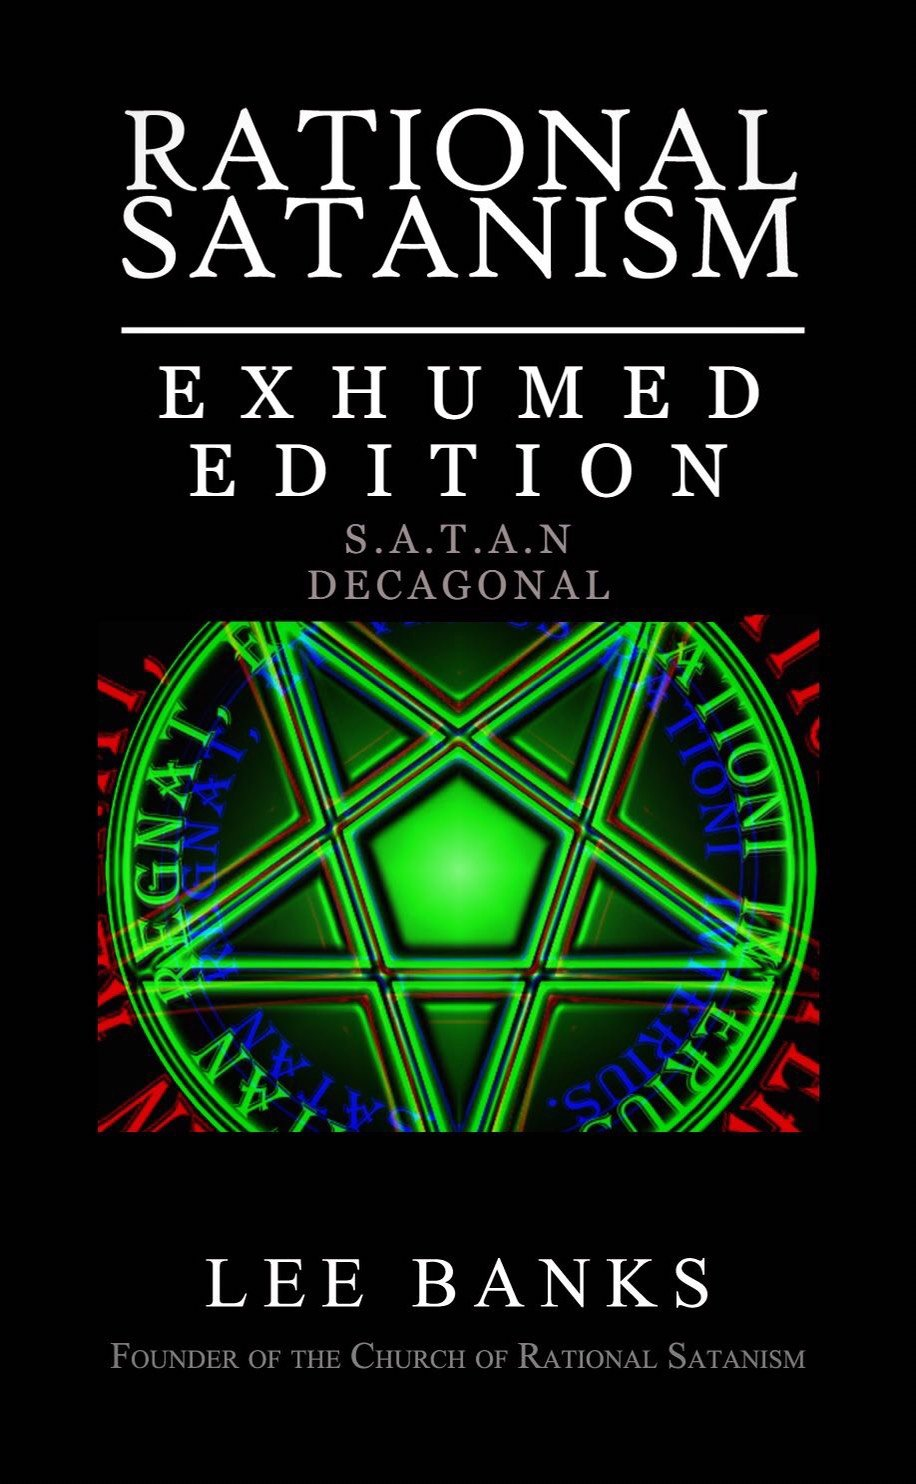 Rational Satanism Exhumed Edition